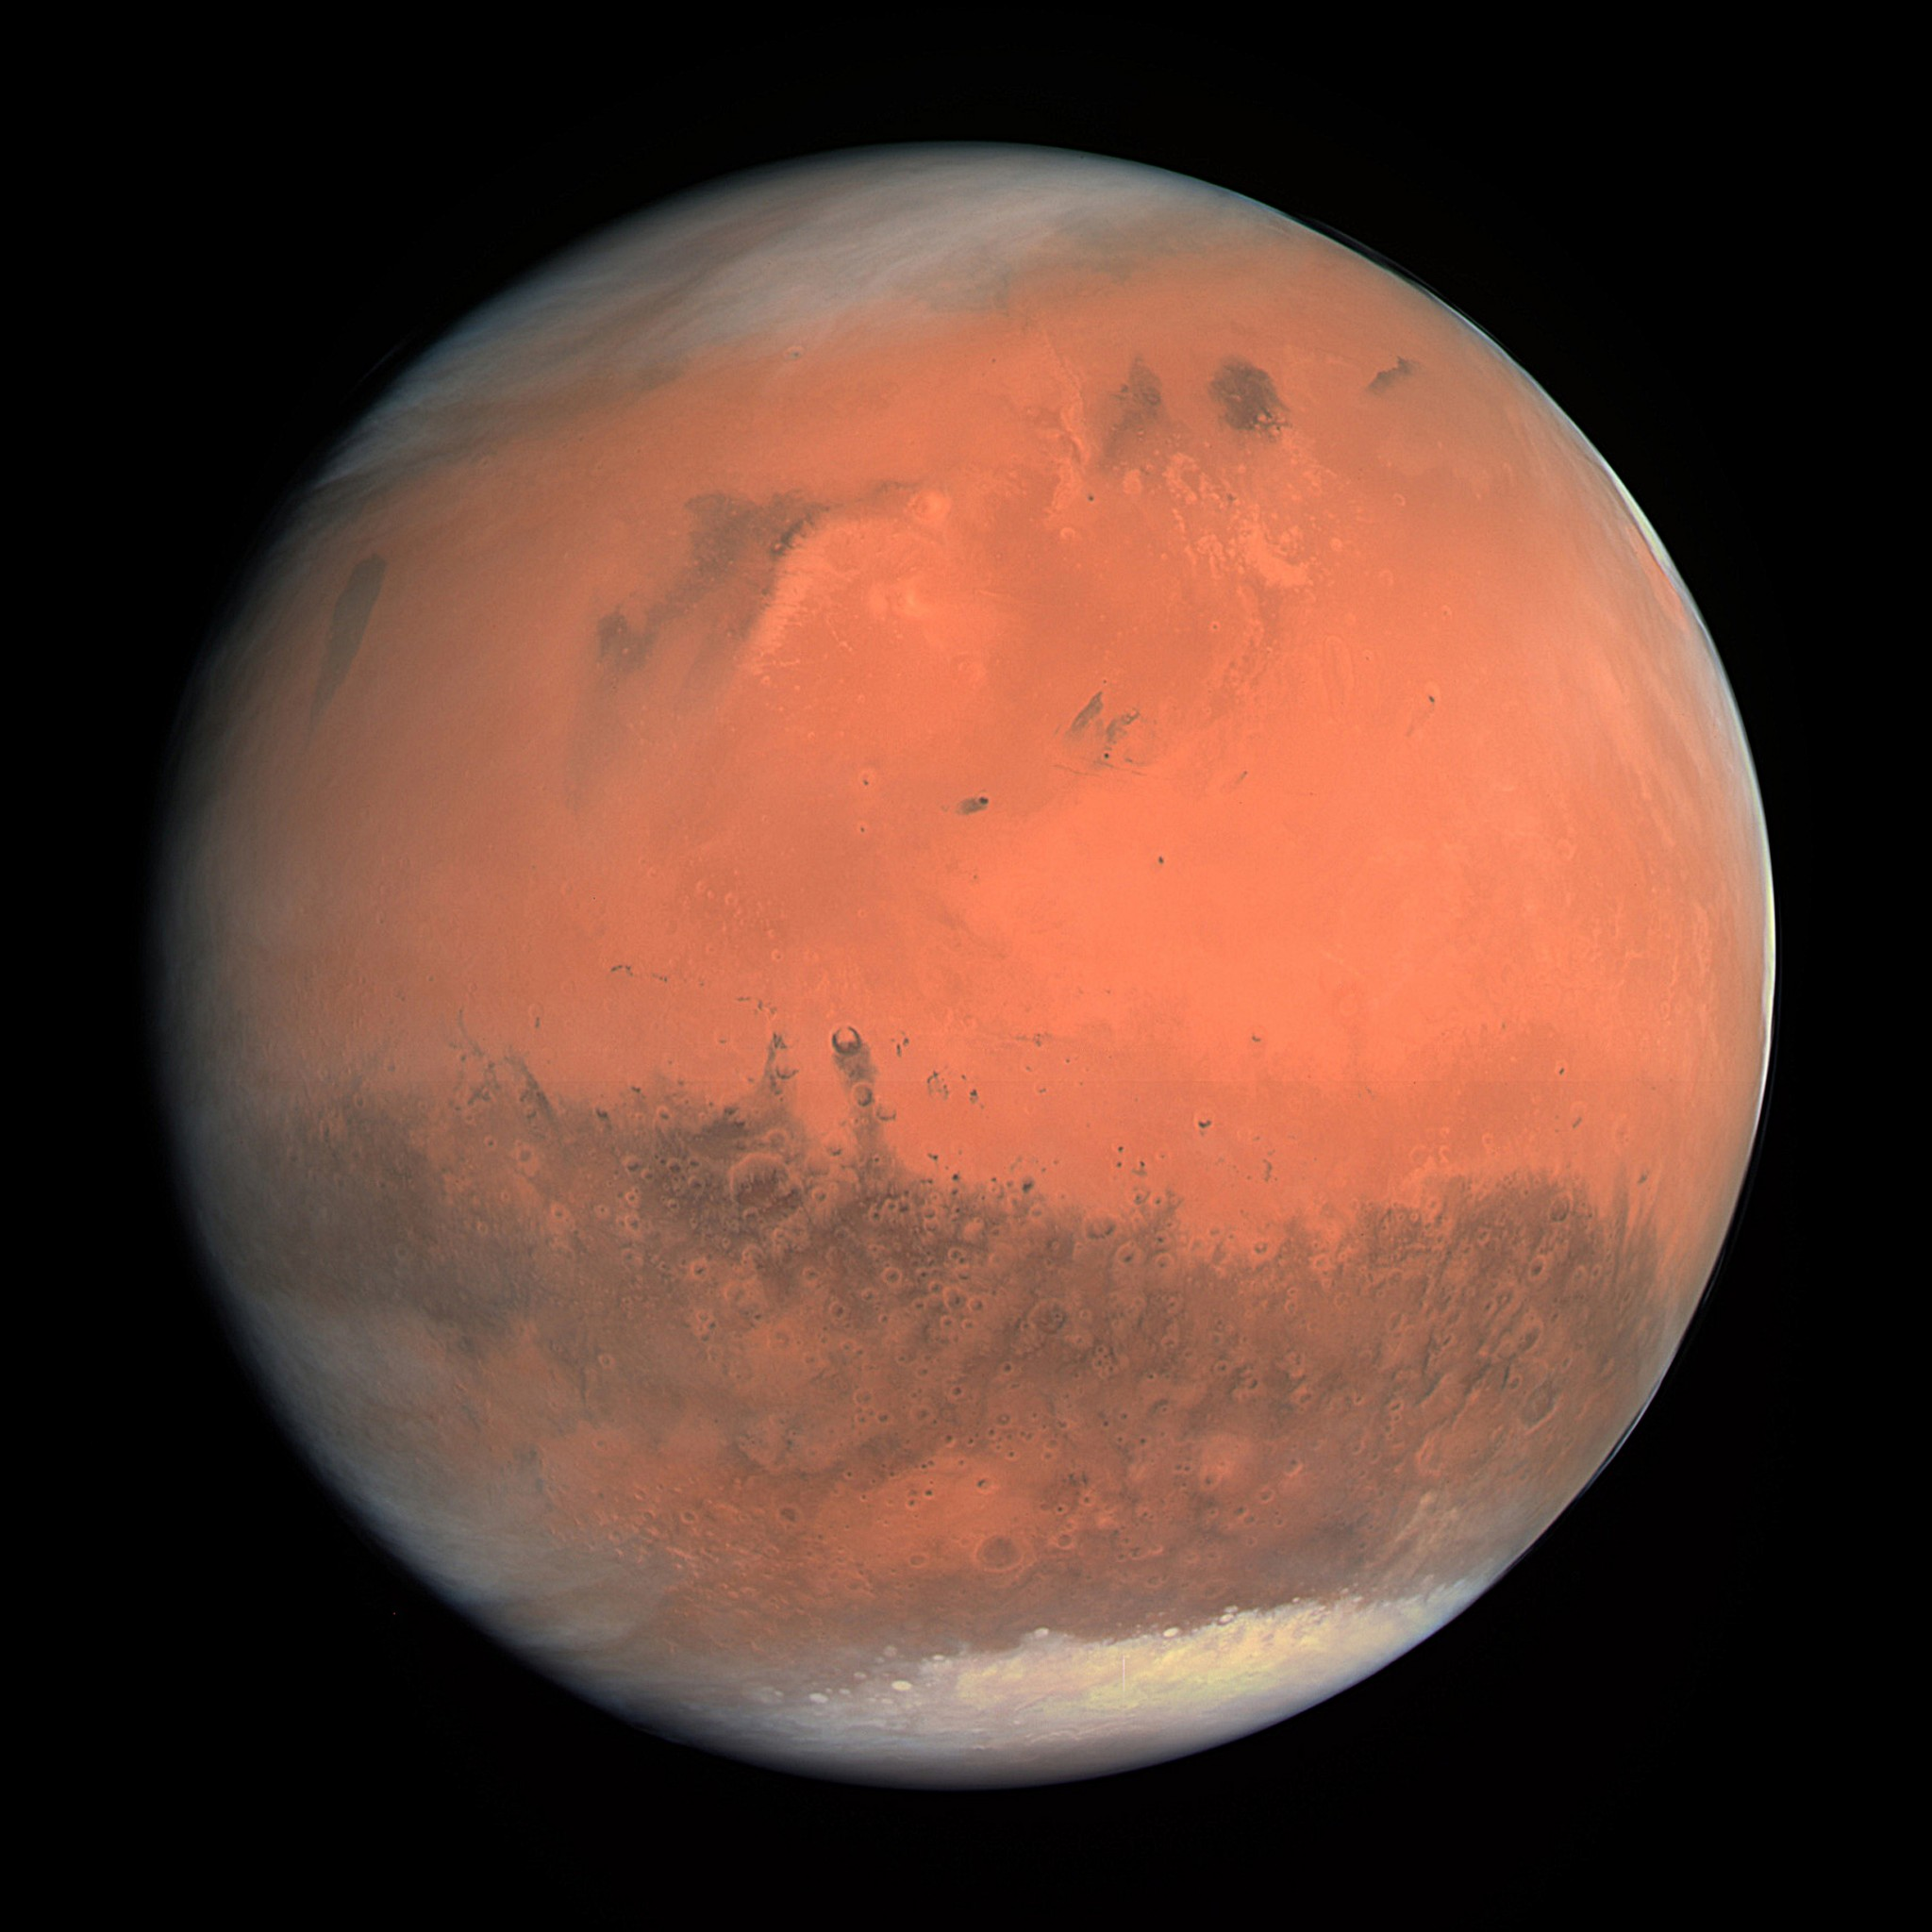 Experts predict that the first manned mission will be sent to Mars within the next couple of decades. Photo: ESA - European Space Agency & Max-Planck Institute // Wikimedia Commons.